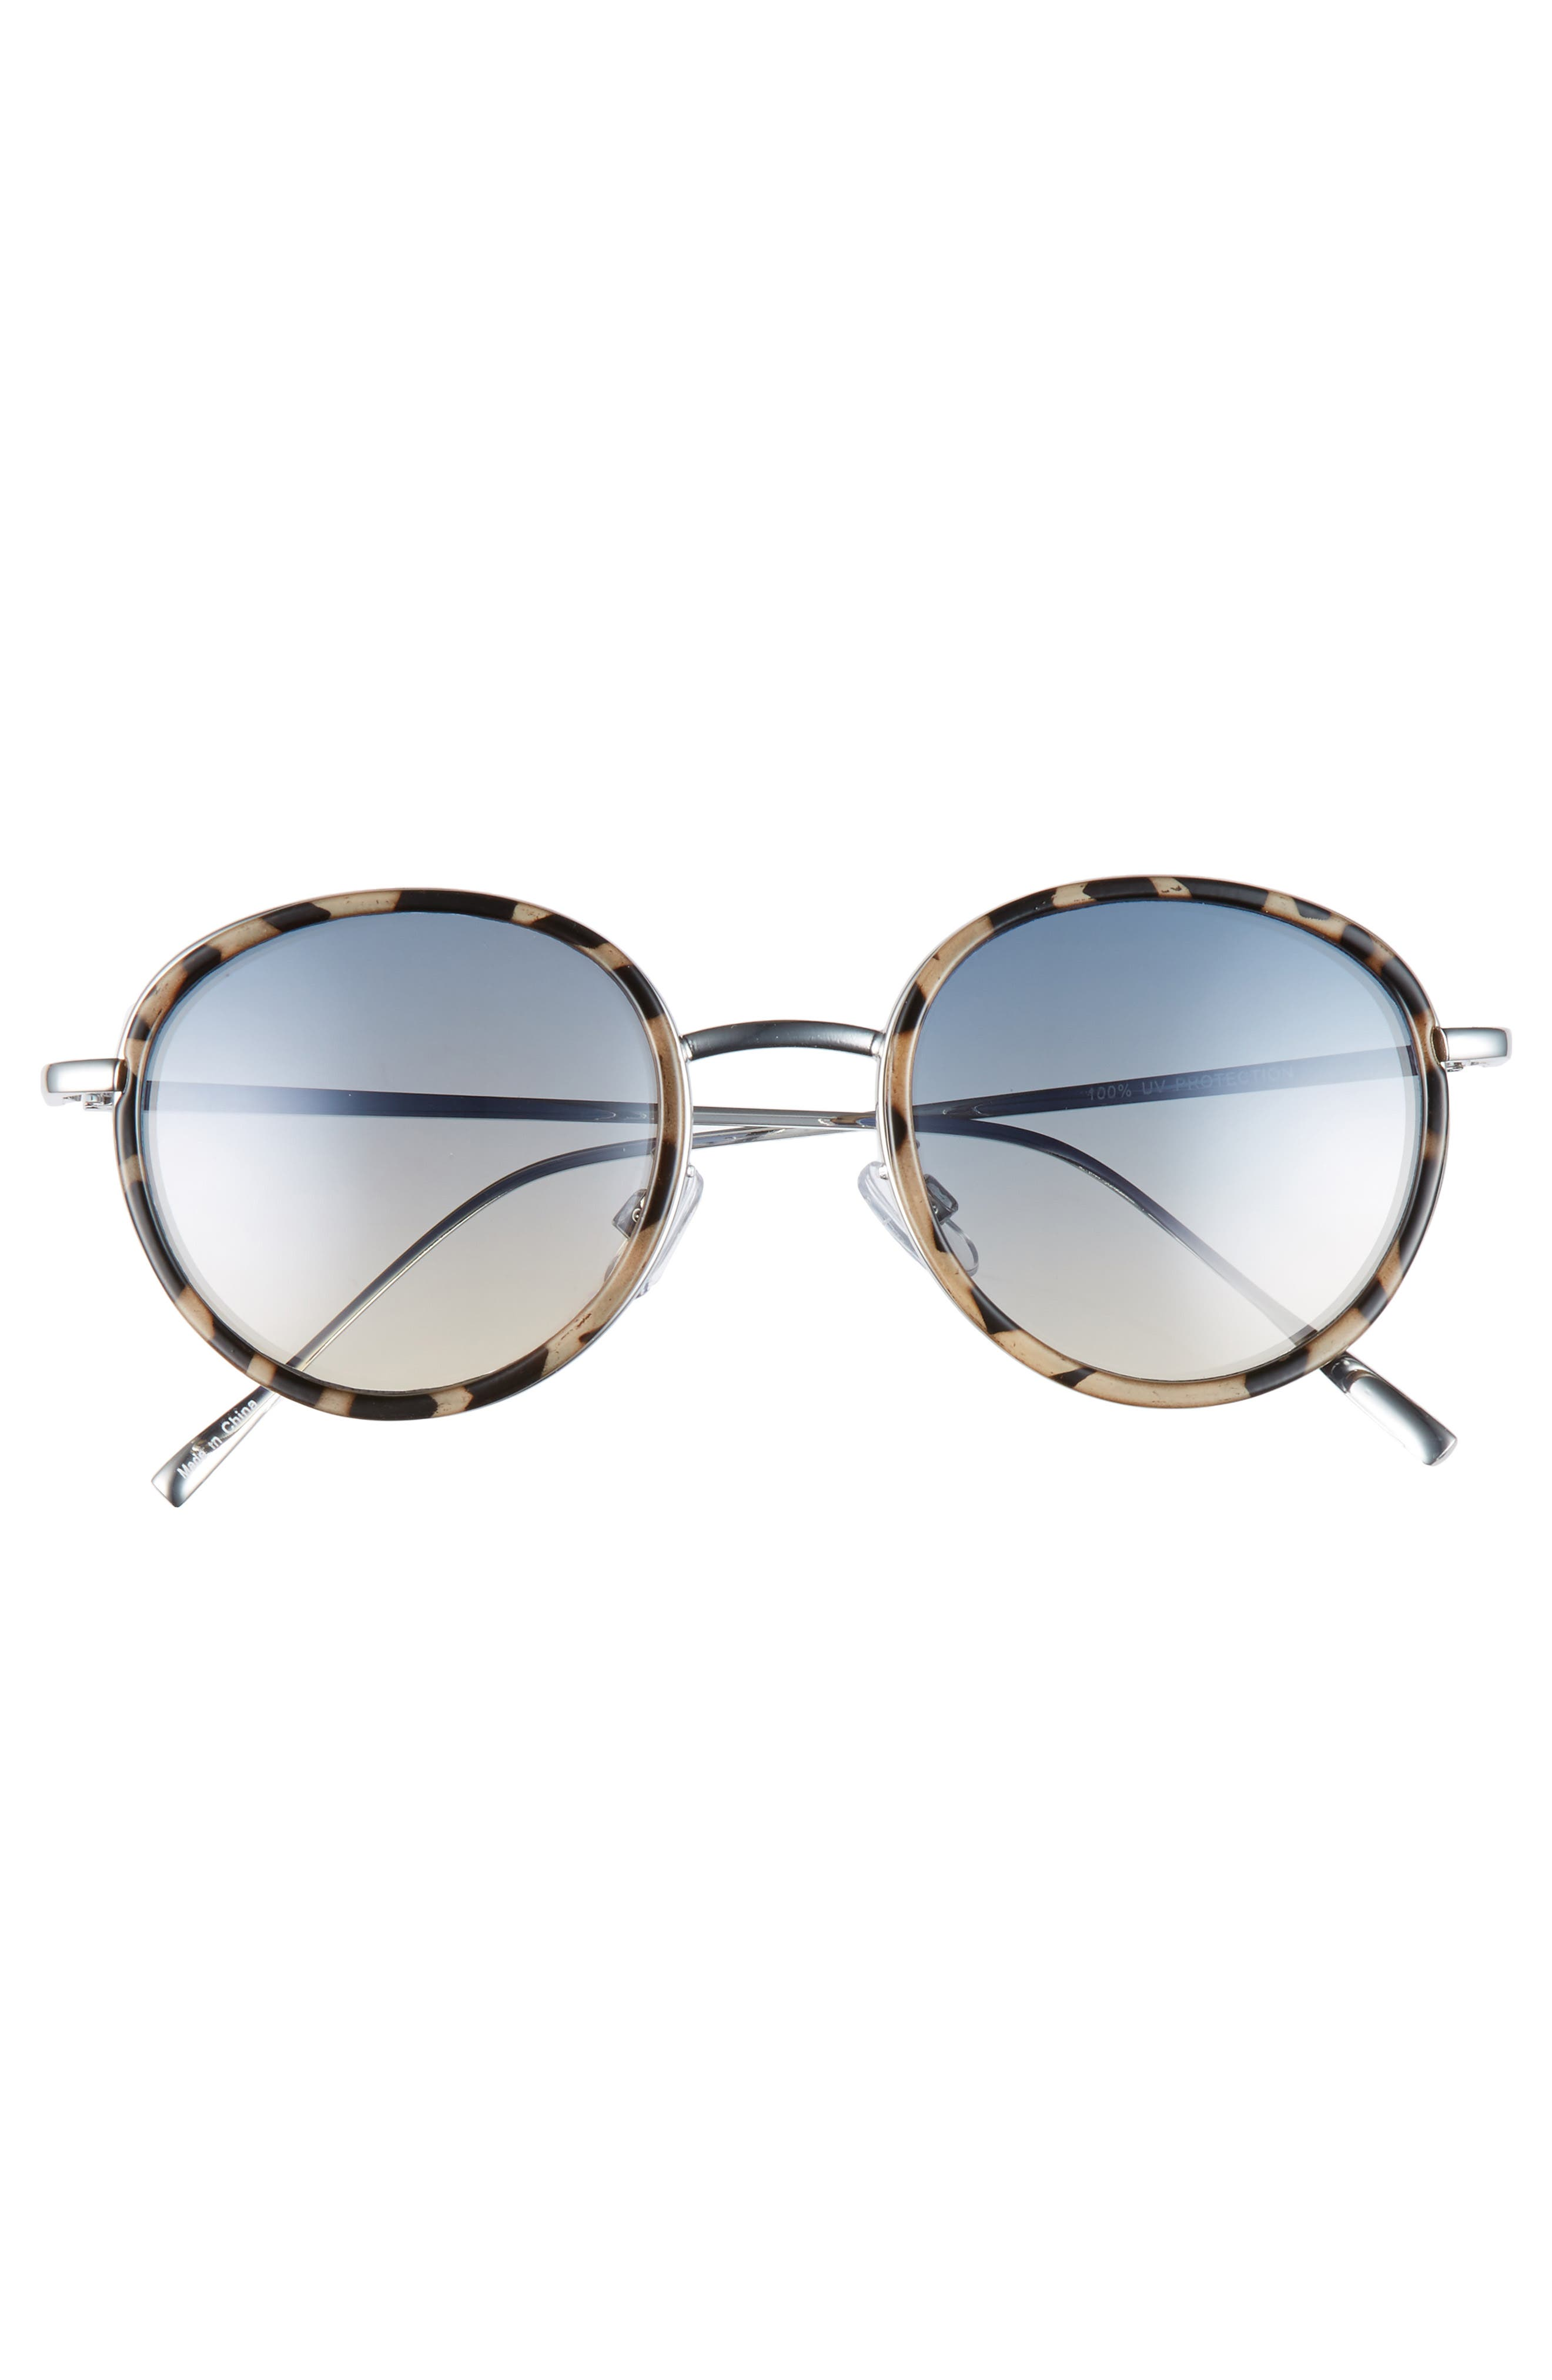 Round Sunglasses,                             Alternate thumbnail 3, color,                             400